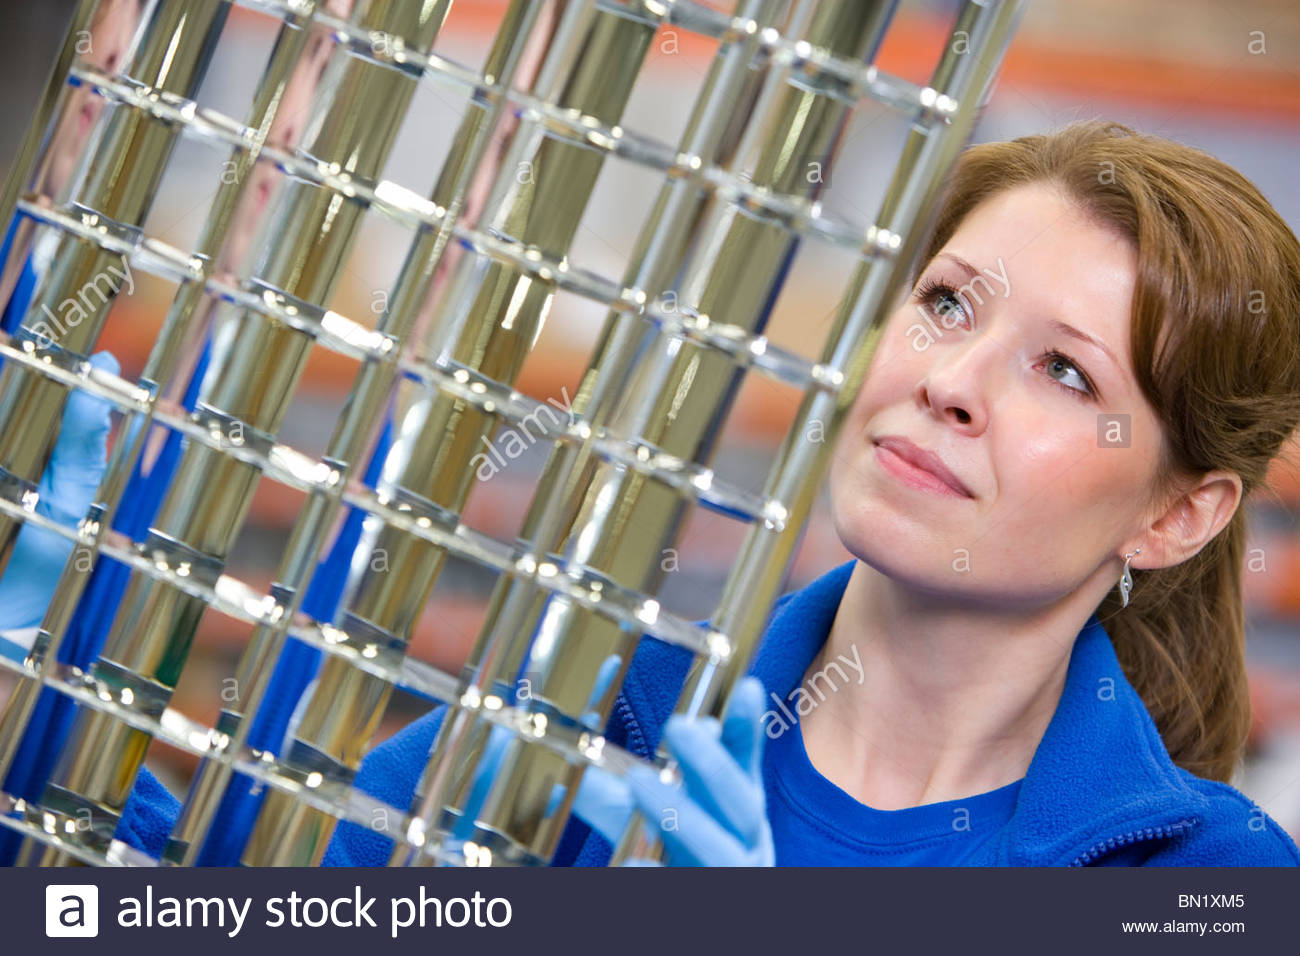 Worker inspecting aluminium light fittings in factory - Stock Image